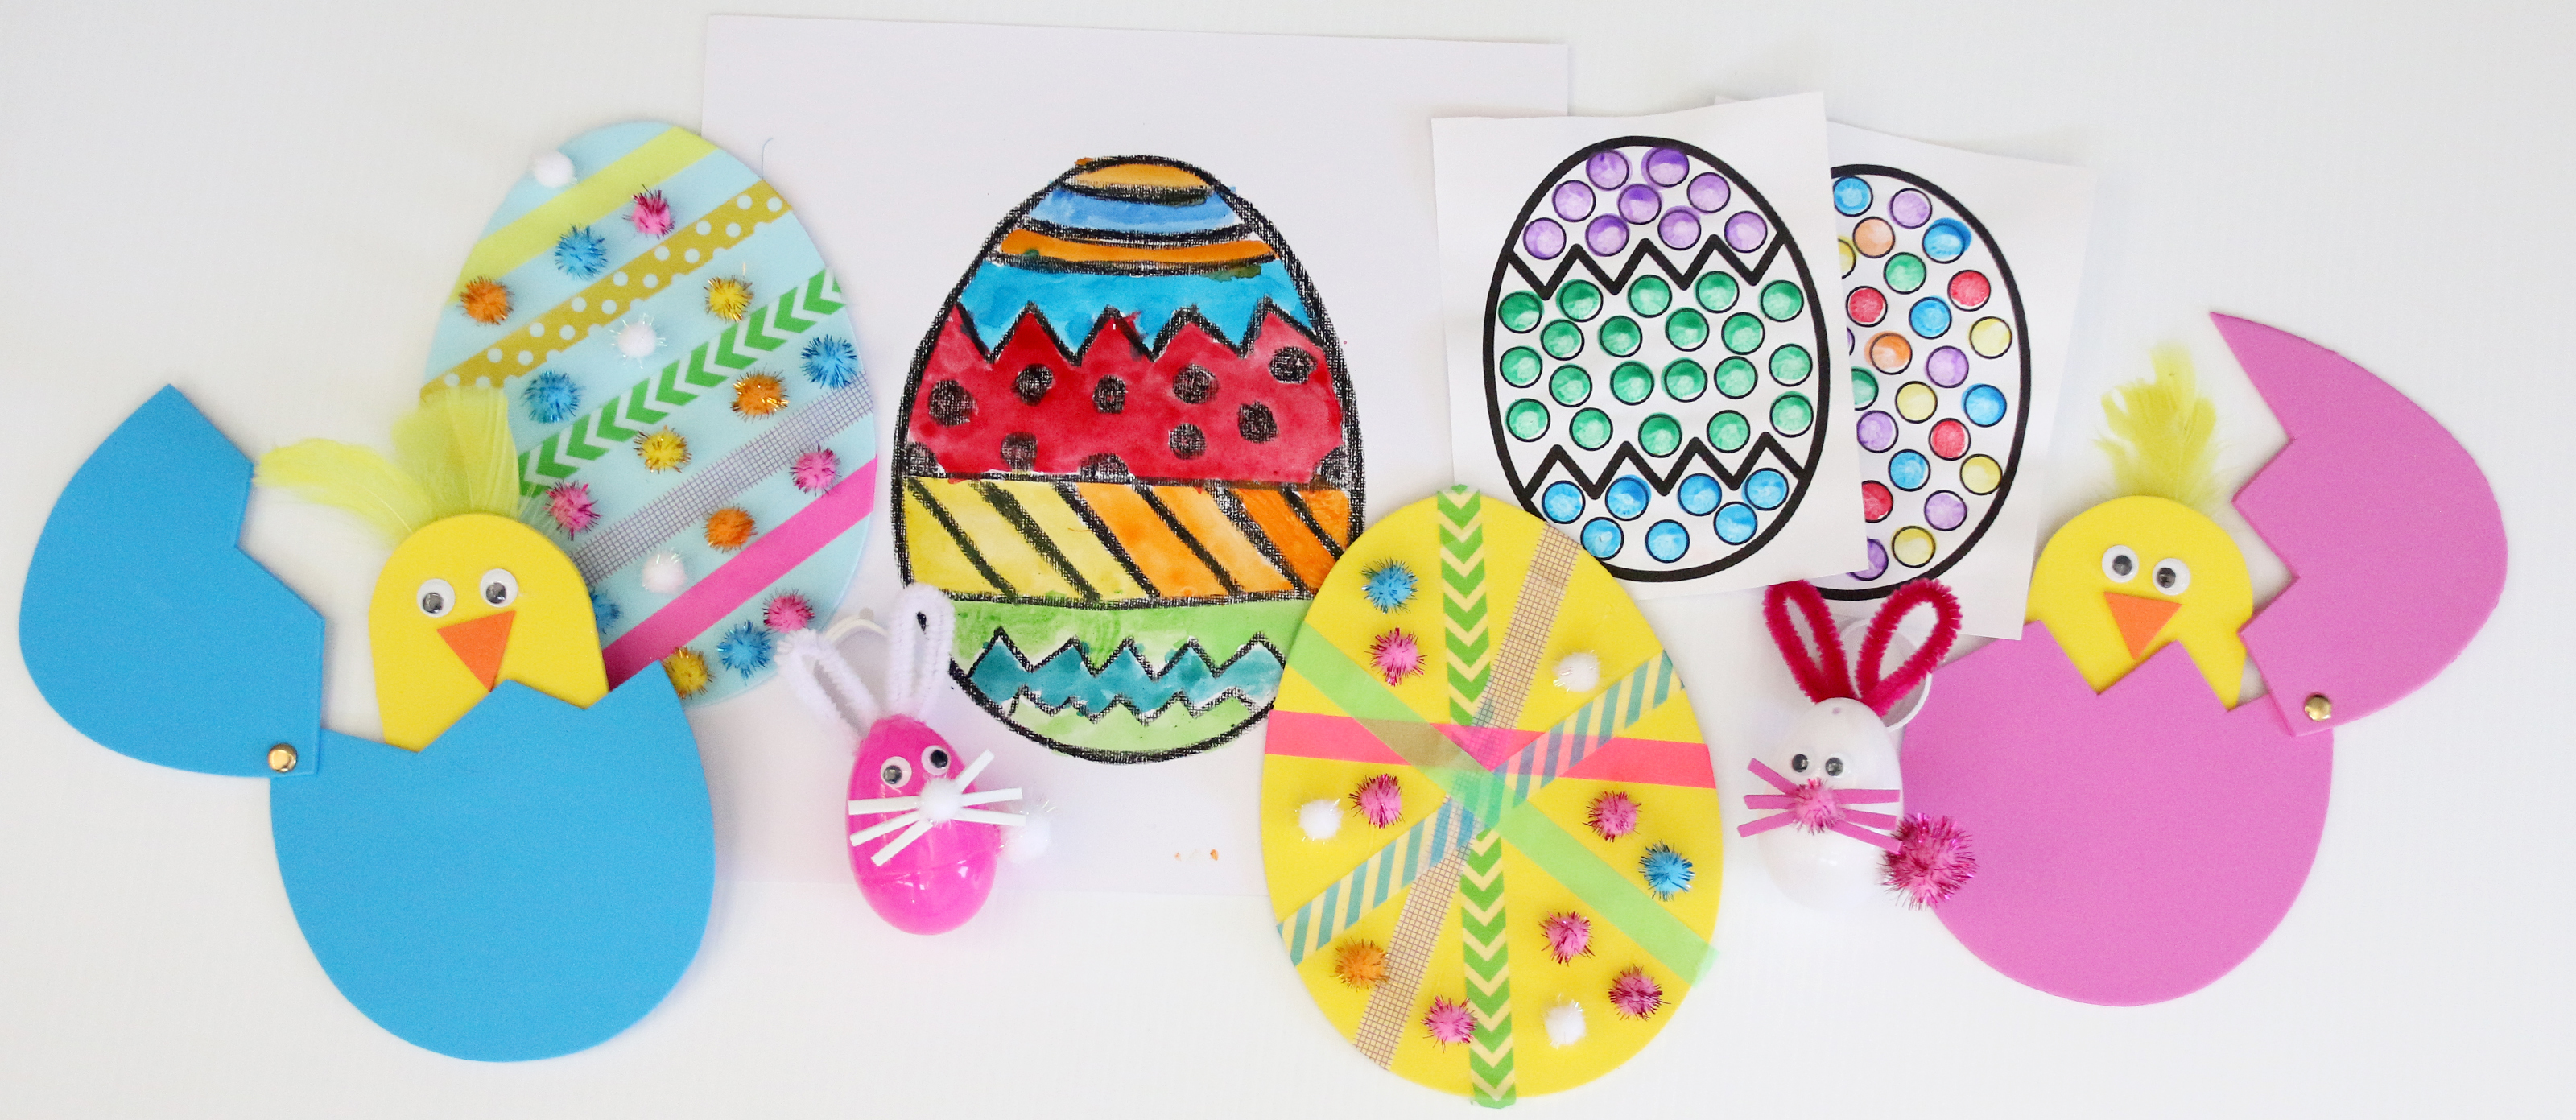 32 Simple Easter Egg Crafts for Preschoolers   Fun3632